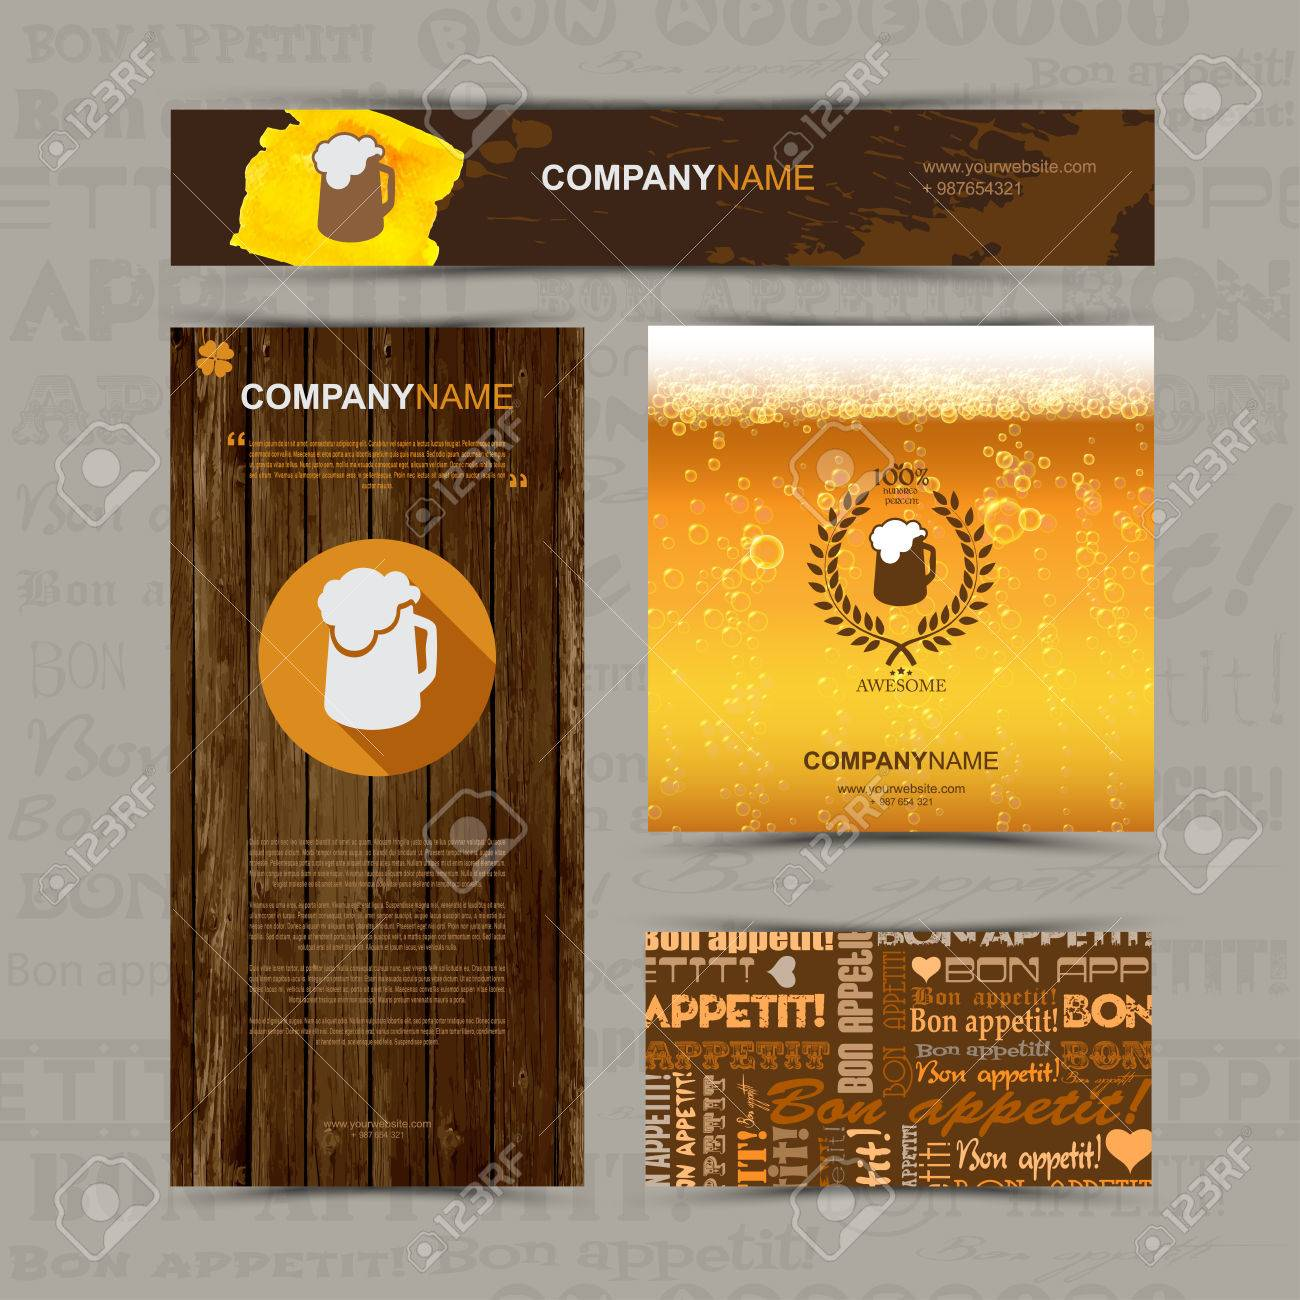 Business card cafe choice image free business cards template of identity for beer restaurant cafe bar business template of identity for beer restaurant cafe magicingreecefo Choice Image